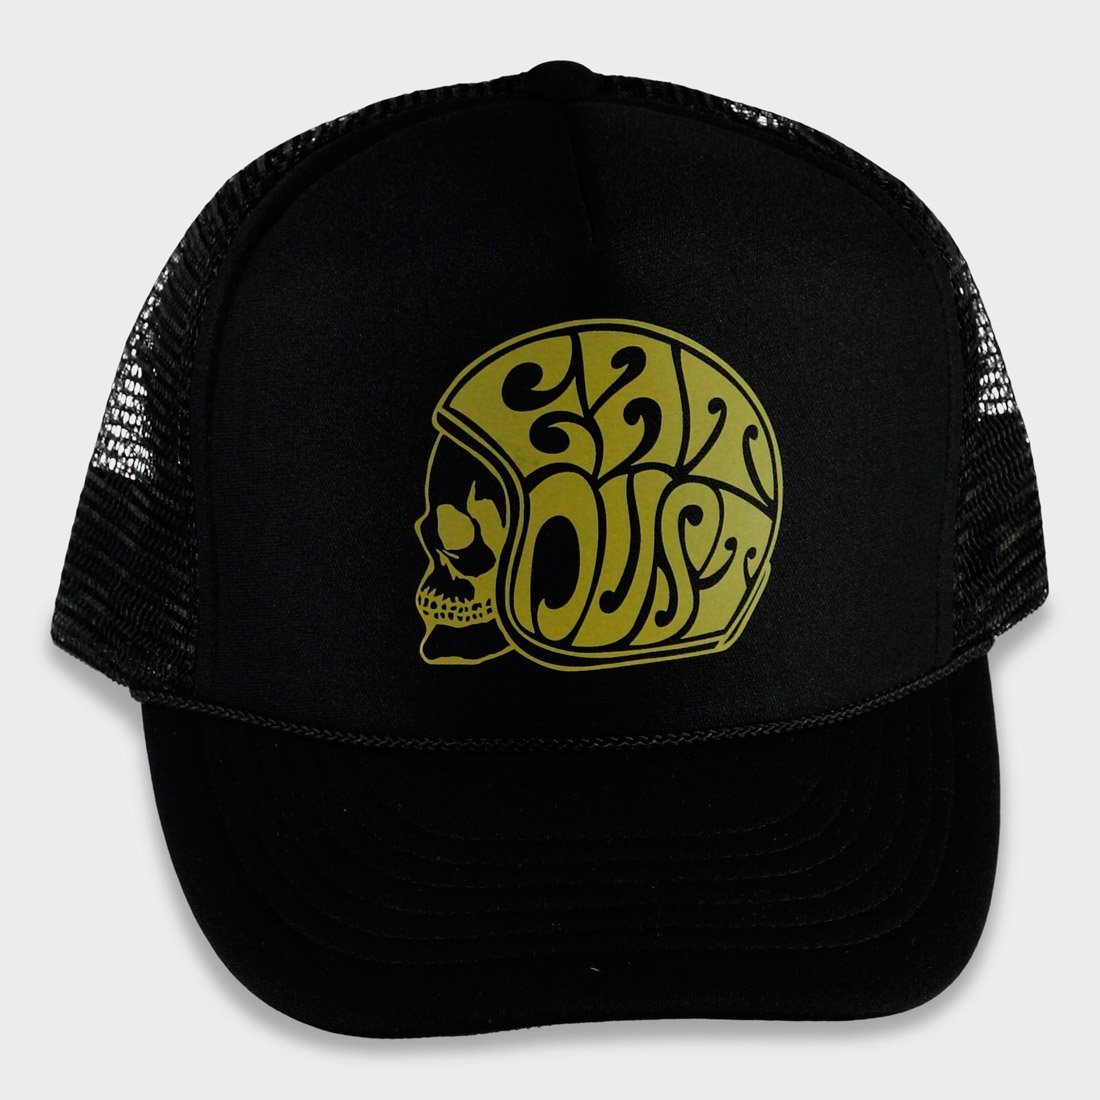 Eat Dust X Trucker Cap Ed Skull Nylon Hat Black